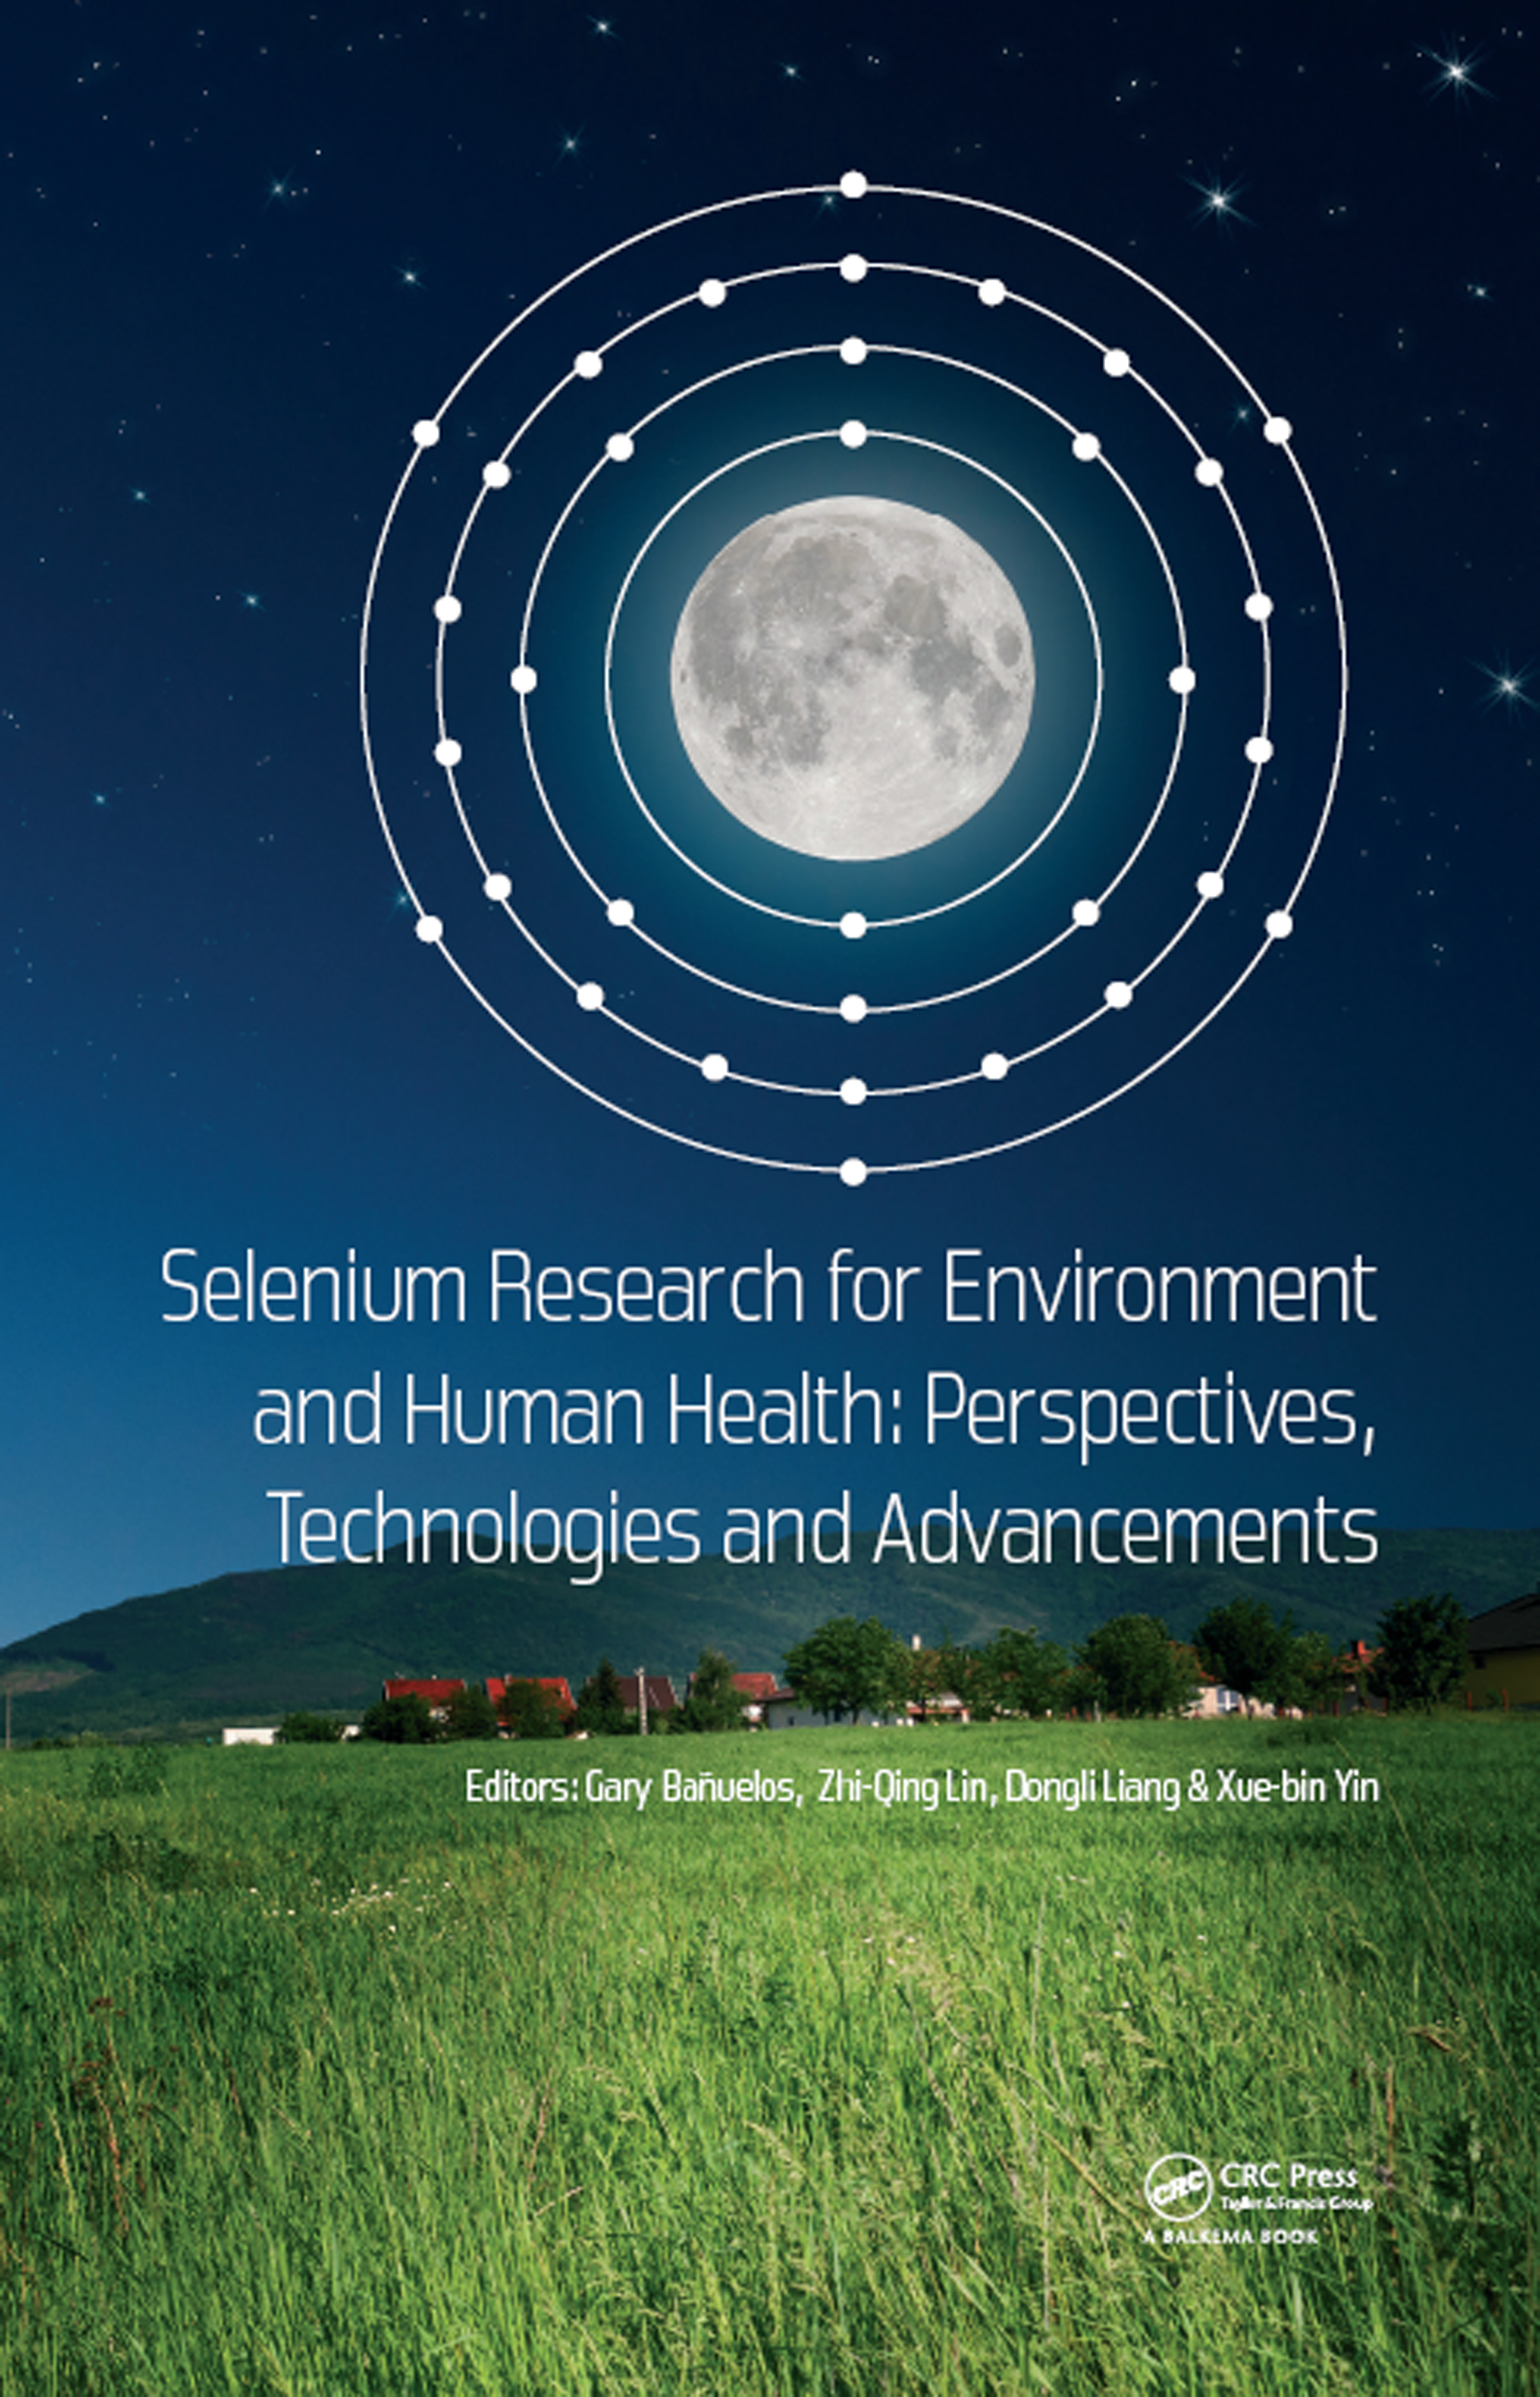 Selenium Research for Environment and Human Health: Perspectives, Technologies and Advancements: Proceedings of the 6th International Conference on Selenium in the Environment and Human Health (ICSEHH 2019), October 27-30, 2019, Yangling, Xi'an, China, 1st Edition (Hardback) book cover